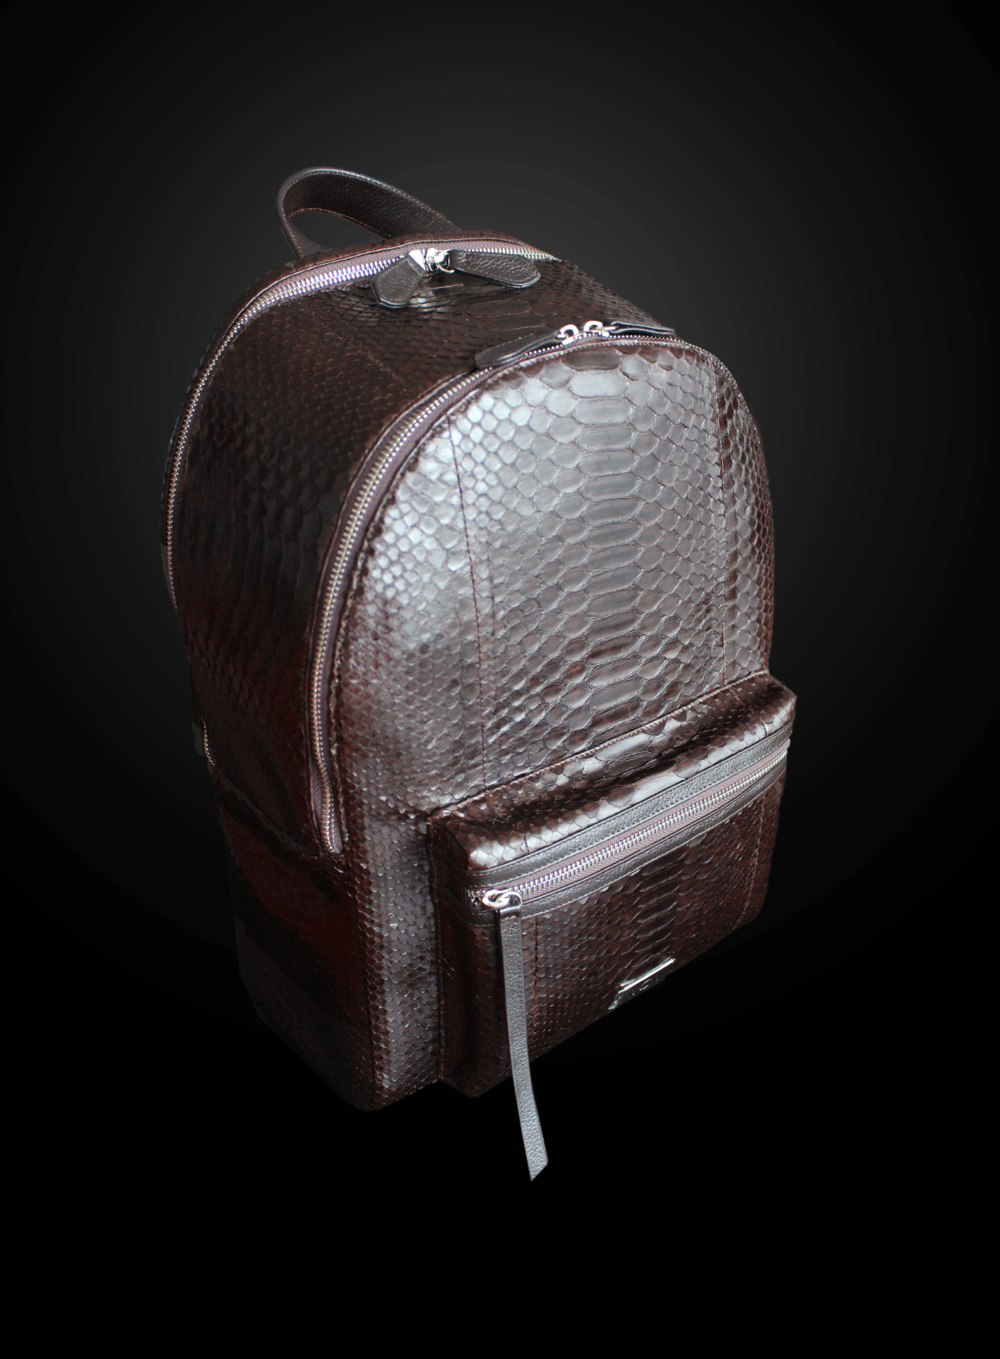 Unisex BAckpack - View The Details